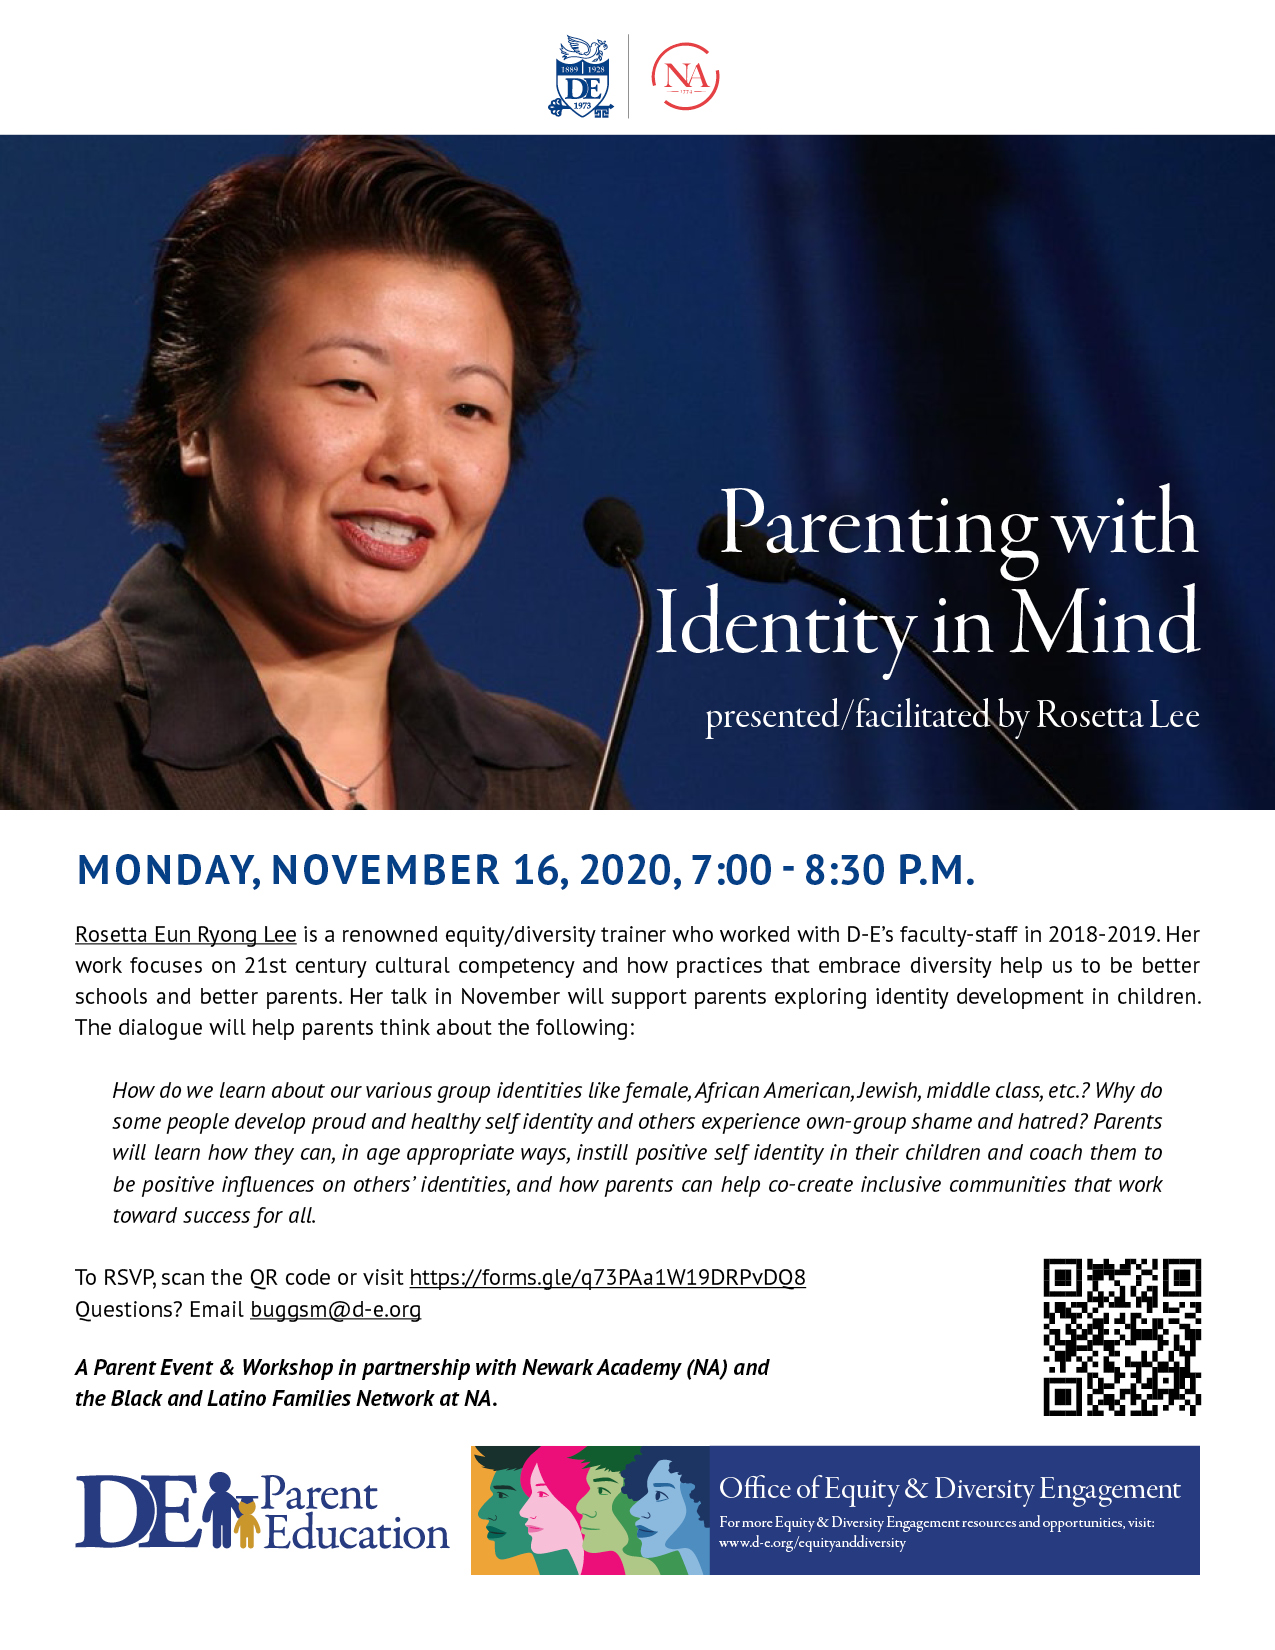 Parenting with Identity in Mind presented/facilitated by Rosetta Lee